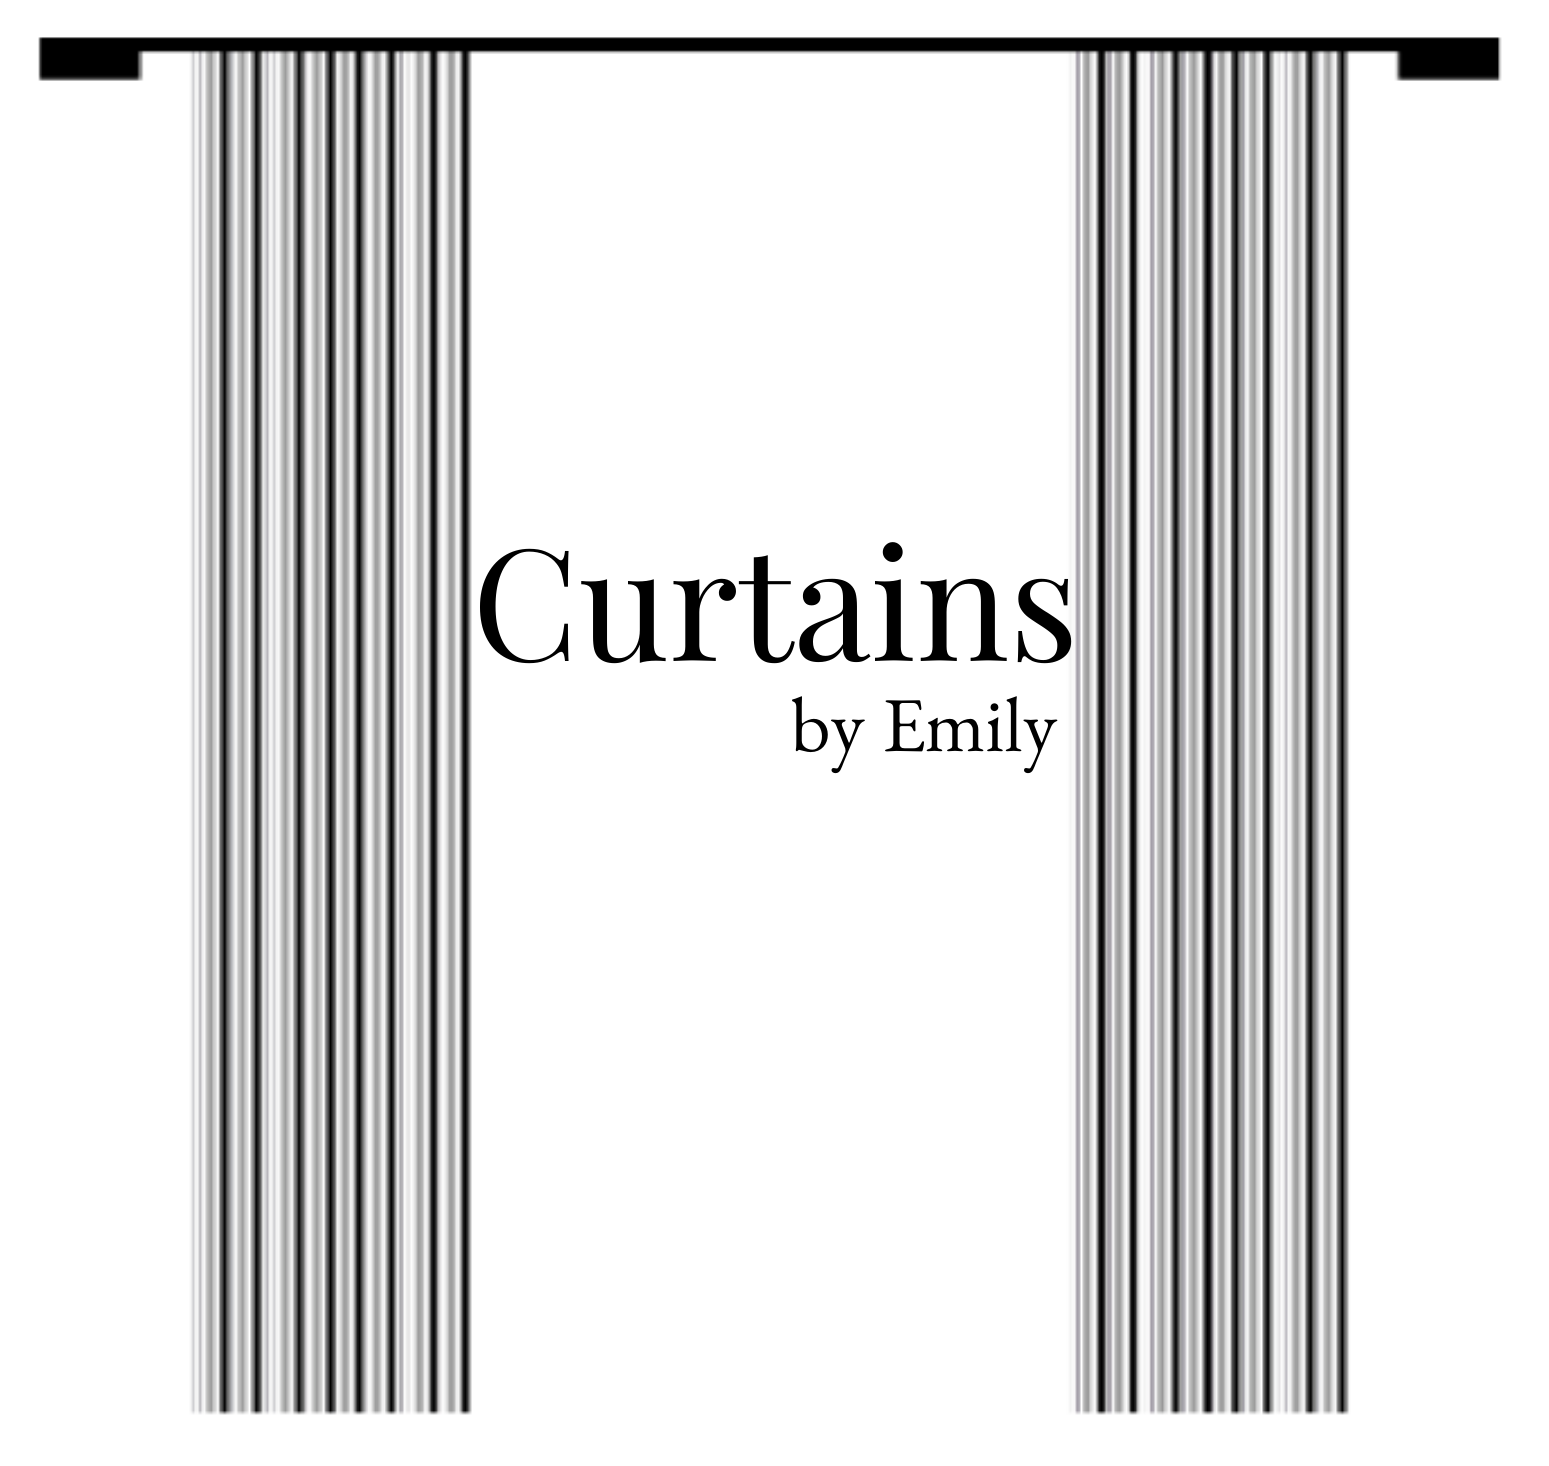 Curtains by Emily